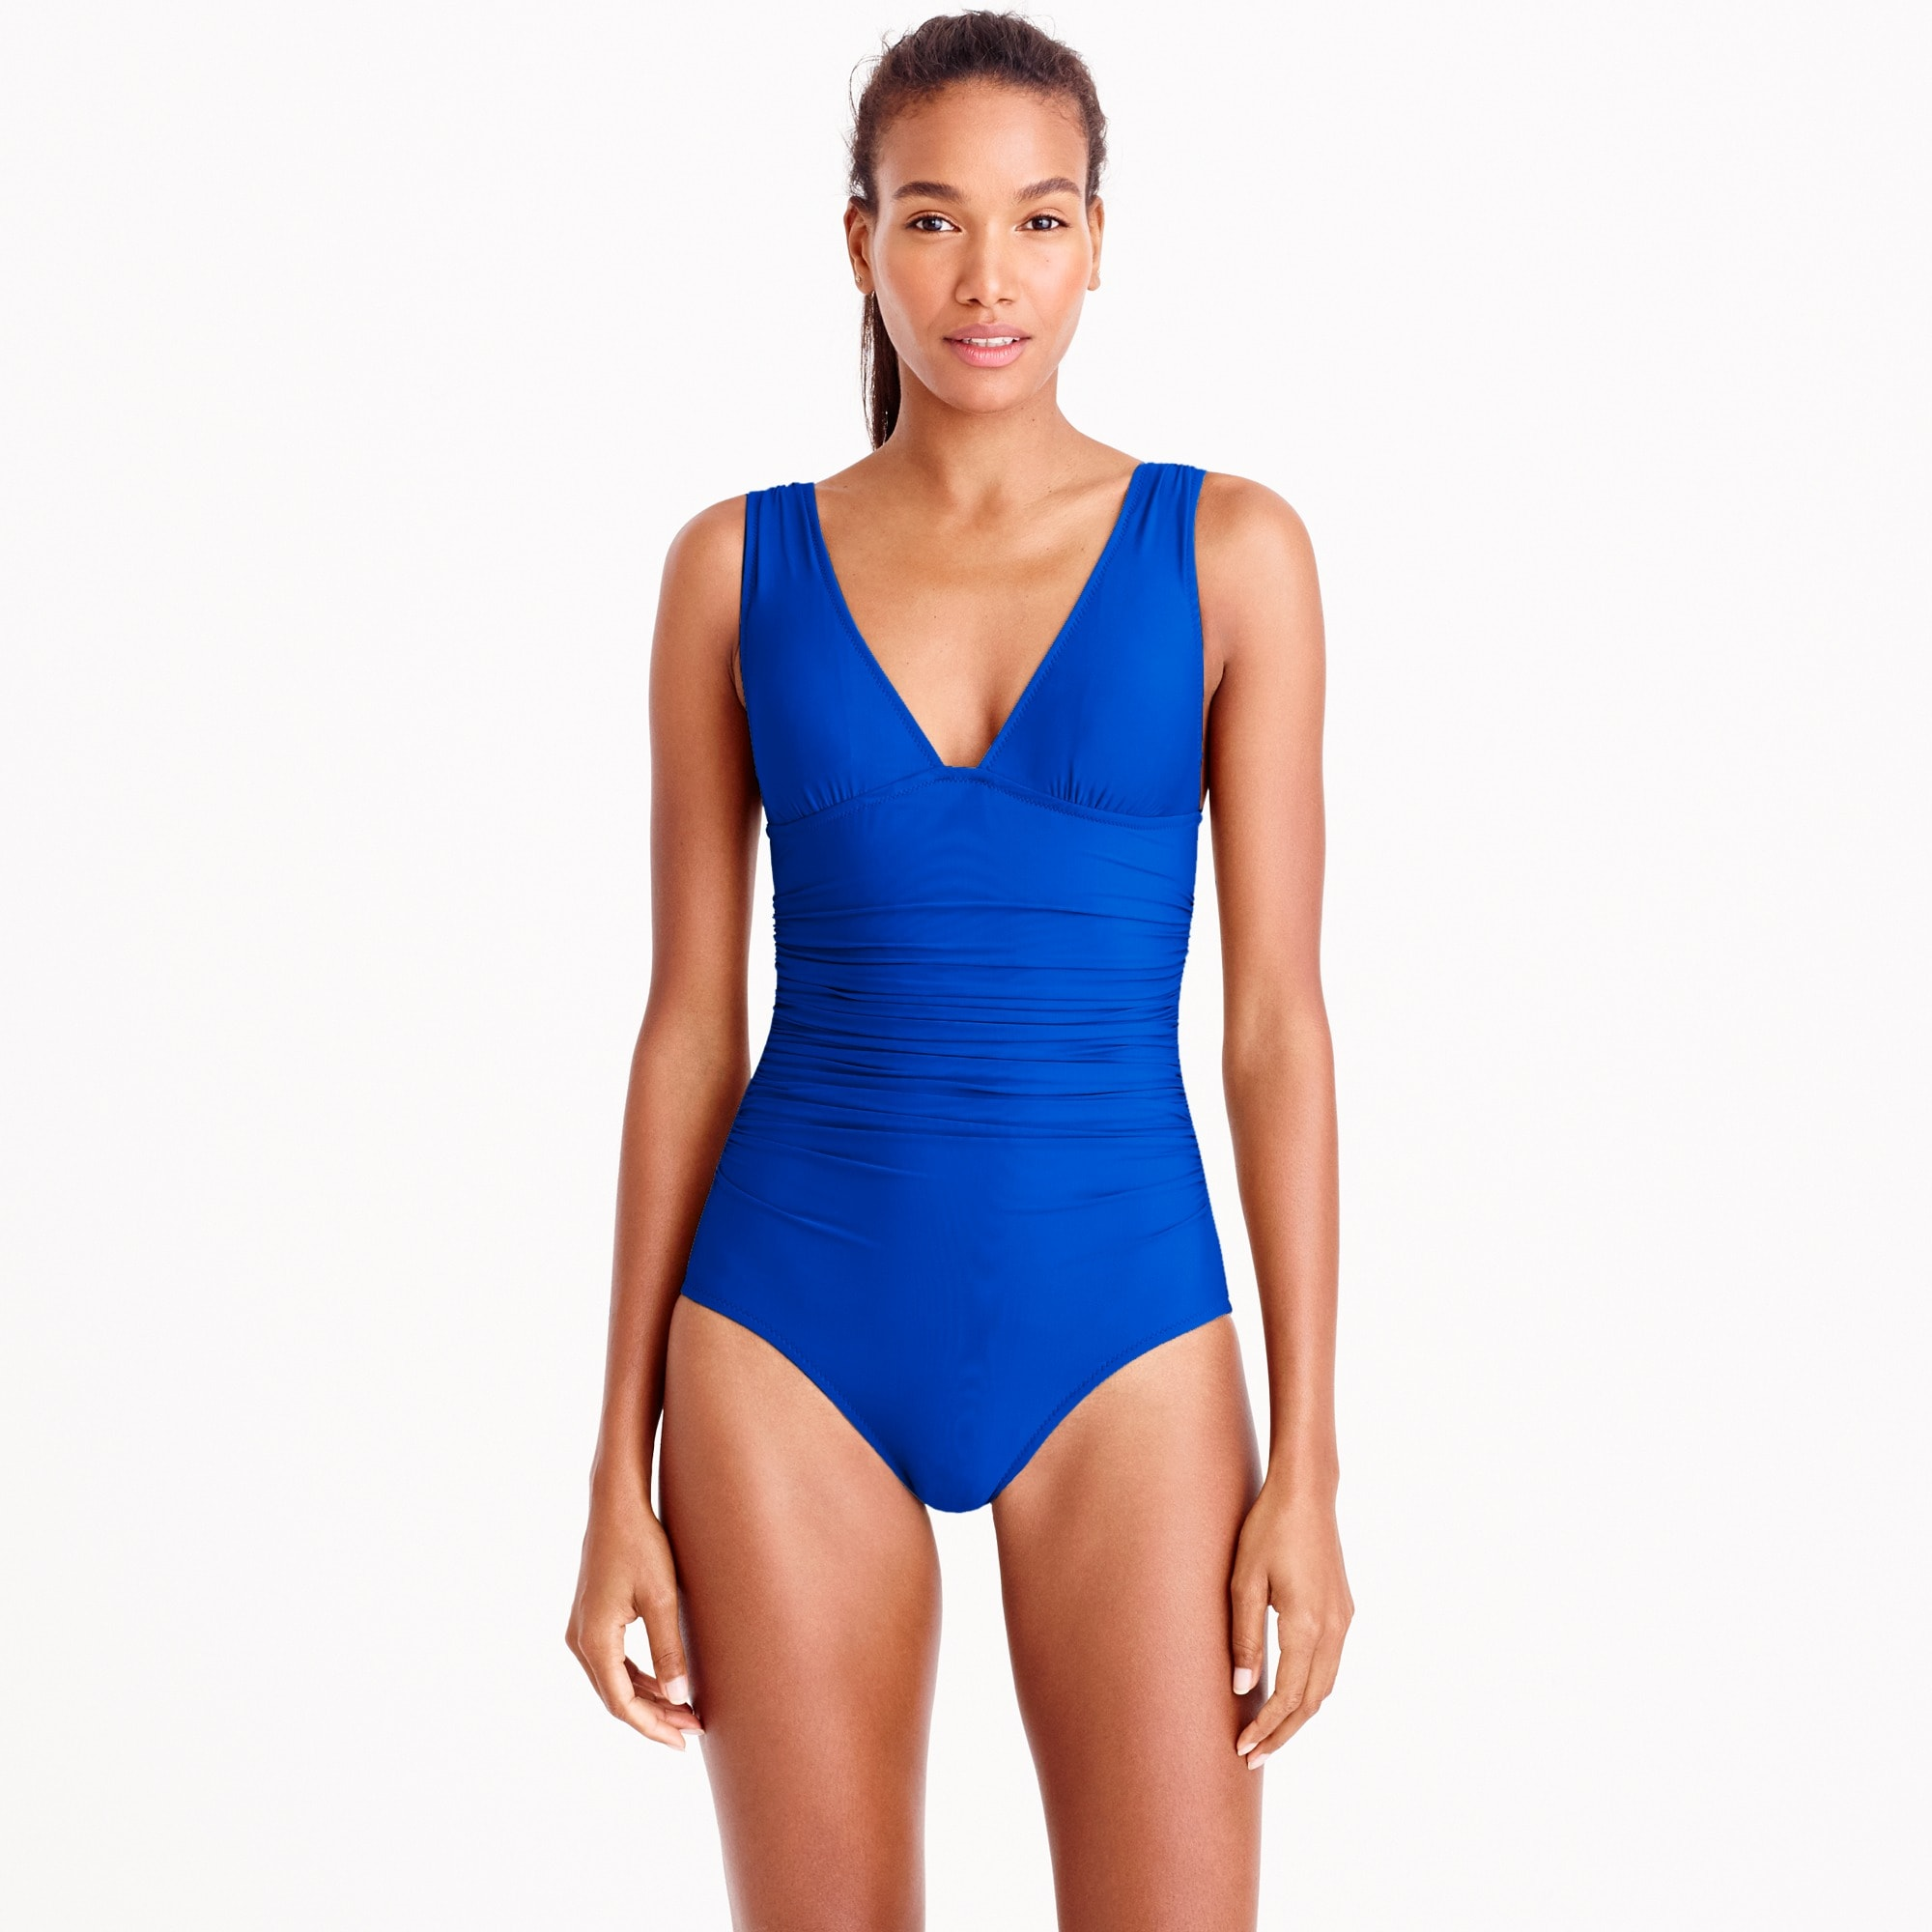 Image 1 for Long torso ruched femme one-piece swimsuit